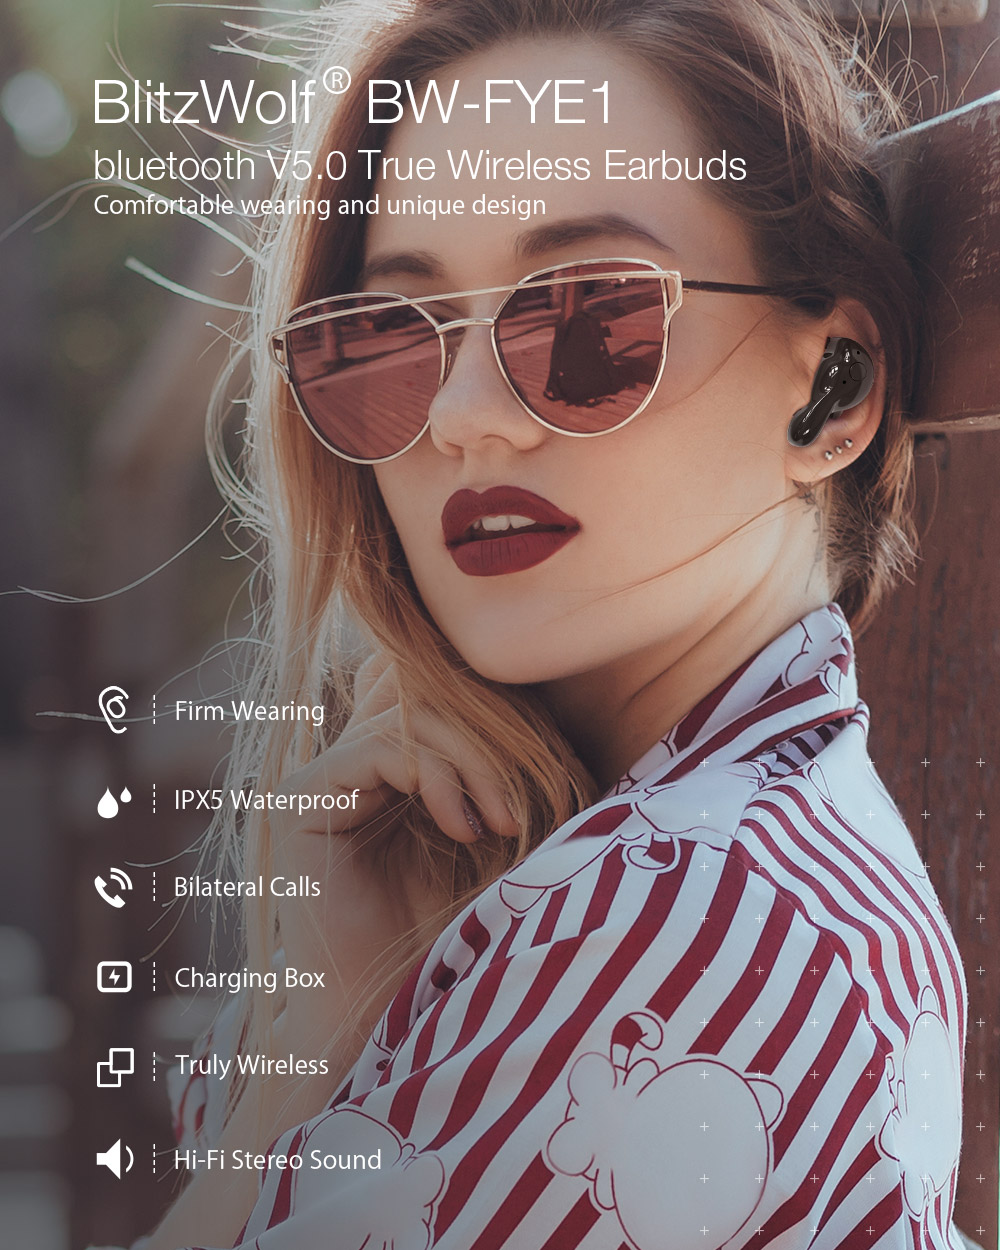 [bluetooth 5.0] Blitzwolf® BW-FYE1 TWS True Wireless Earphone Stereo Headphones with Charging Box